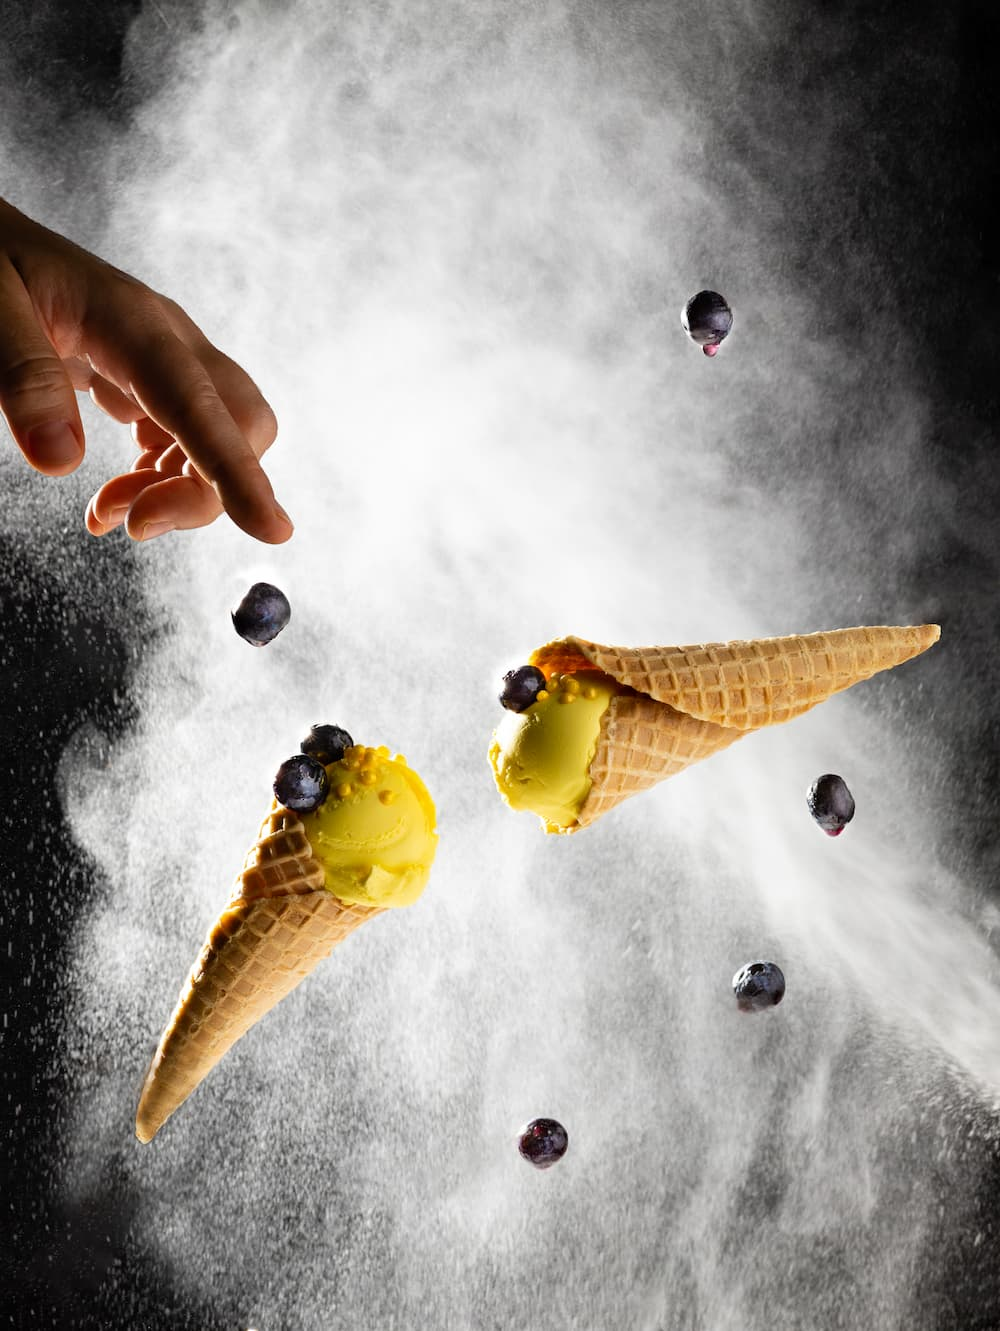 Raid your pantry to add drama and atmosphere to your next photo using flour